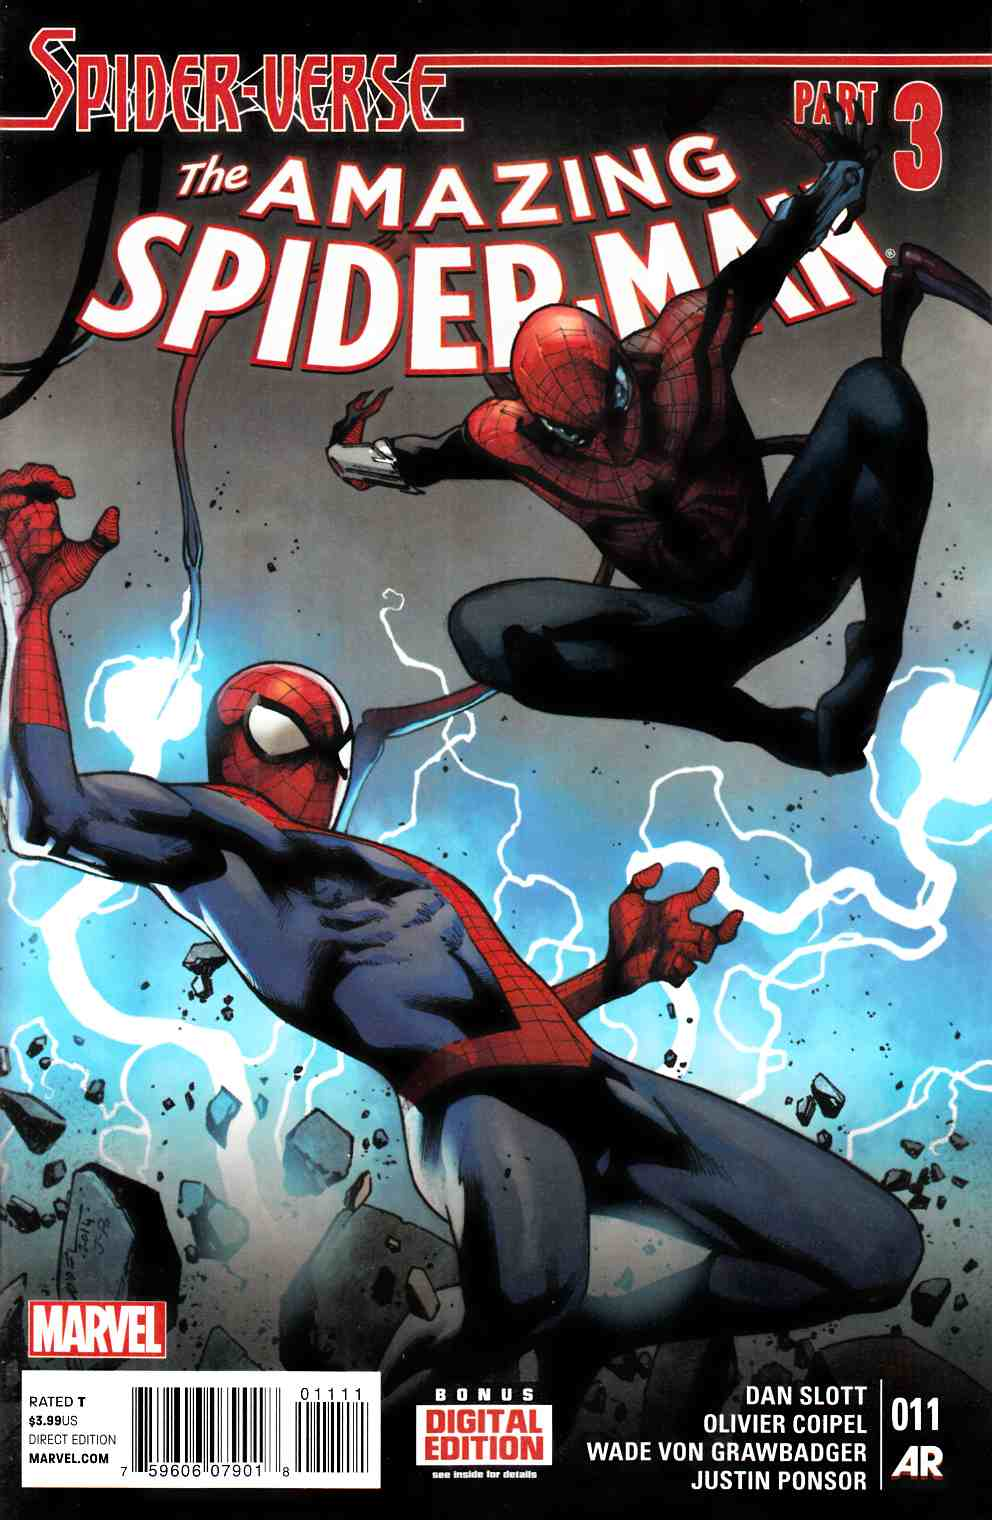 The Amazing Spider-Man #11 Part 3, Marvel // Dan Slott.